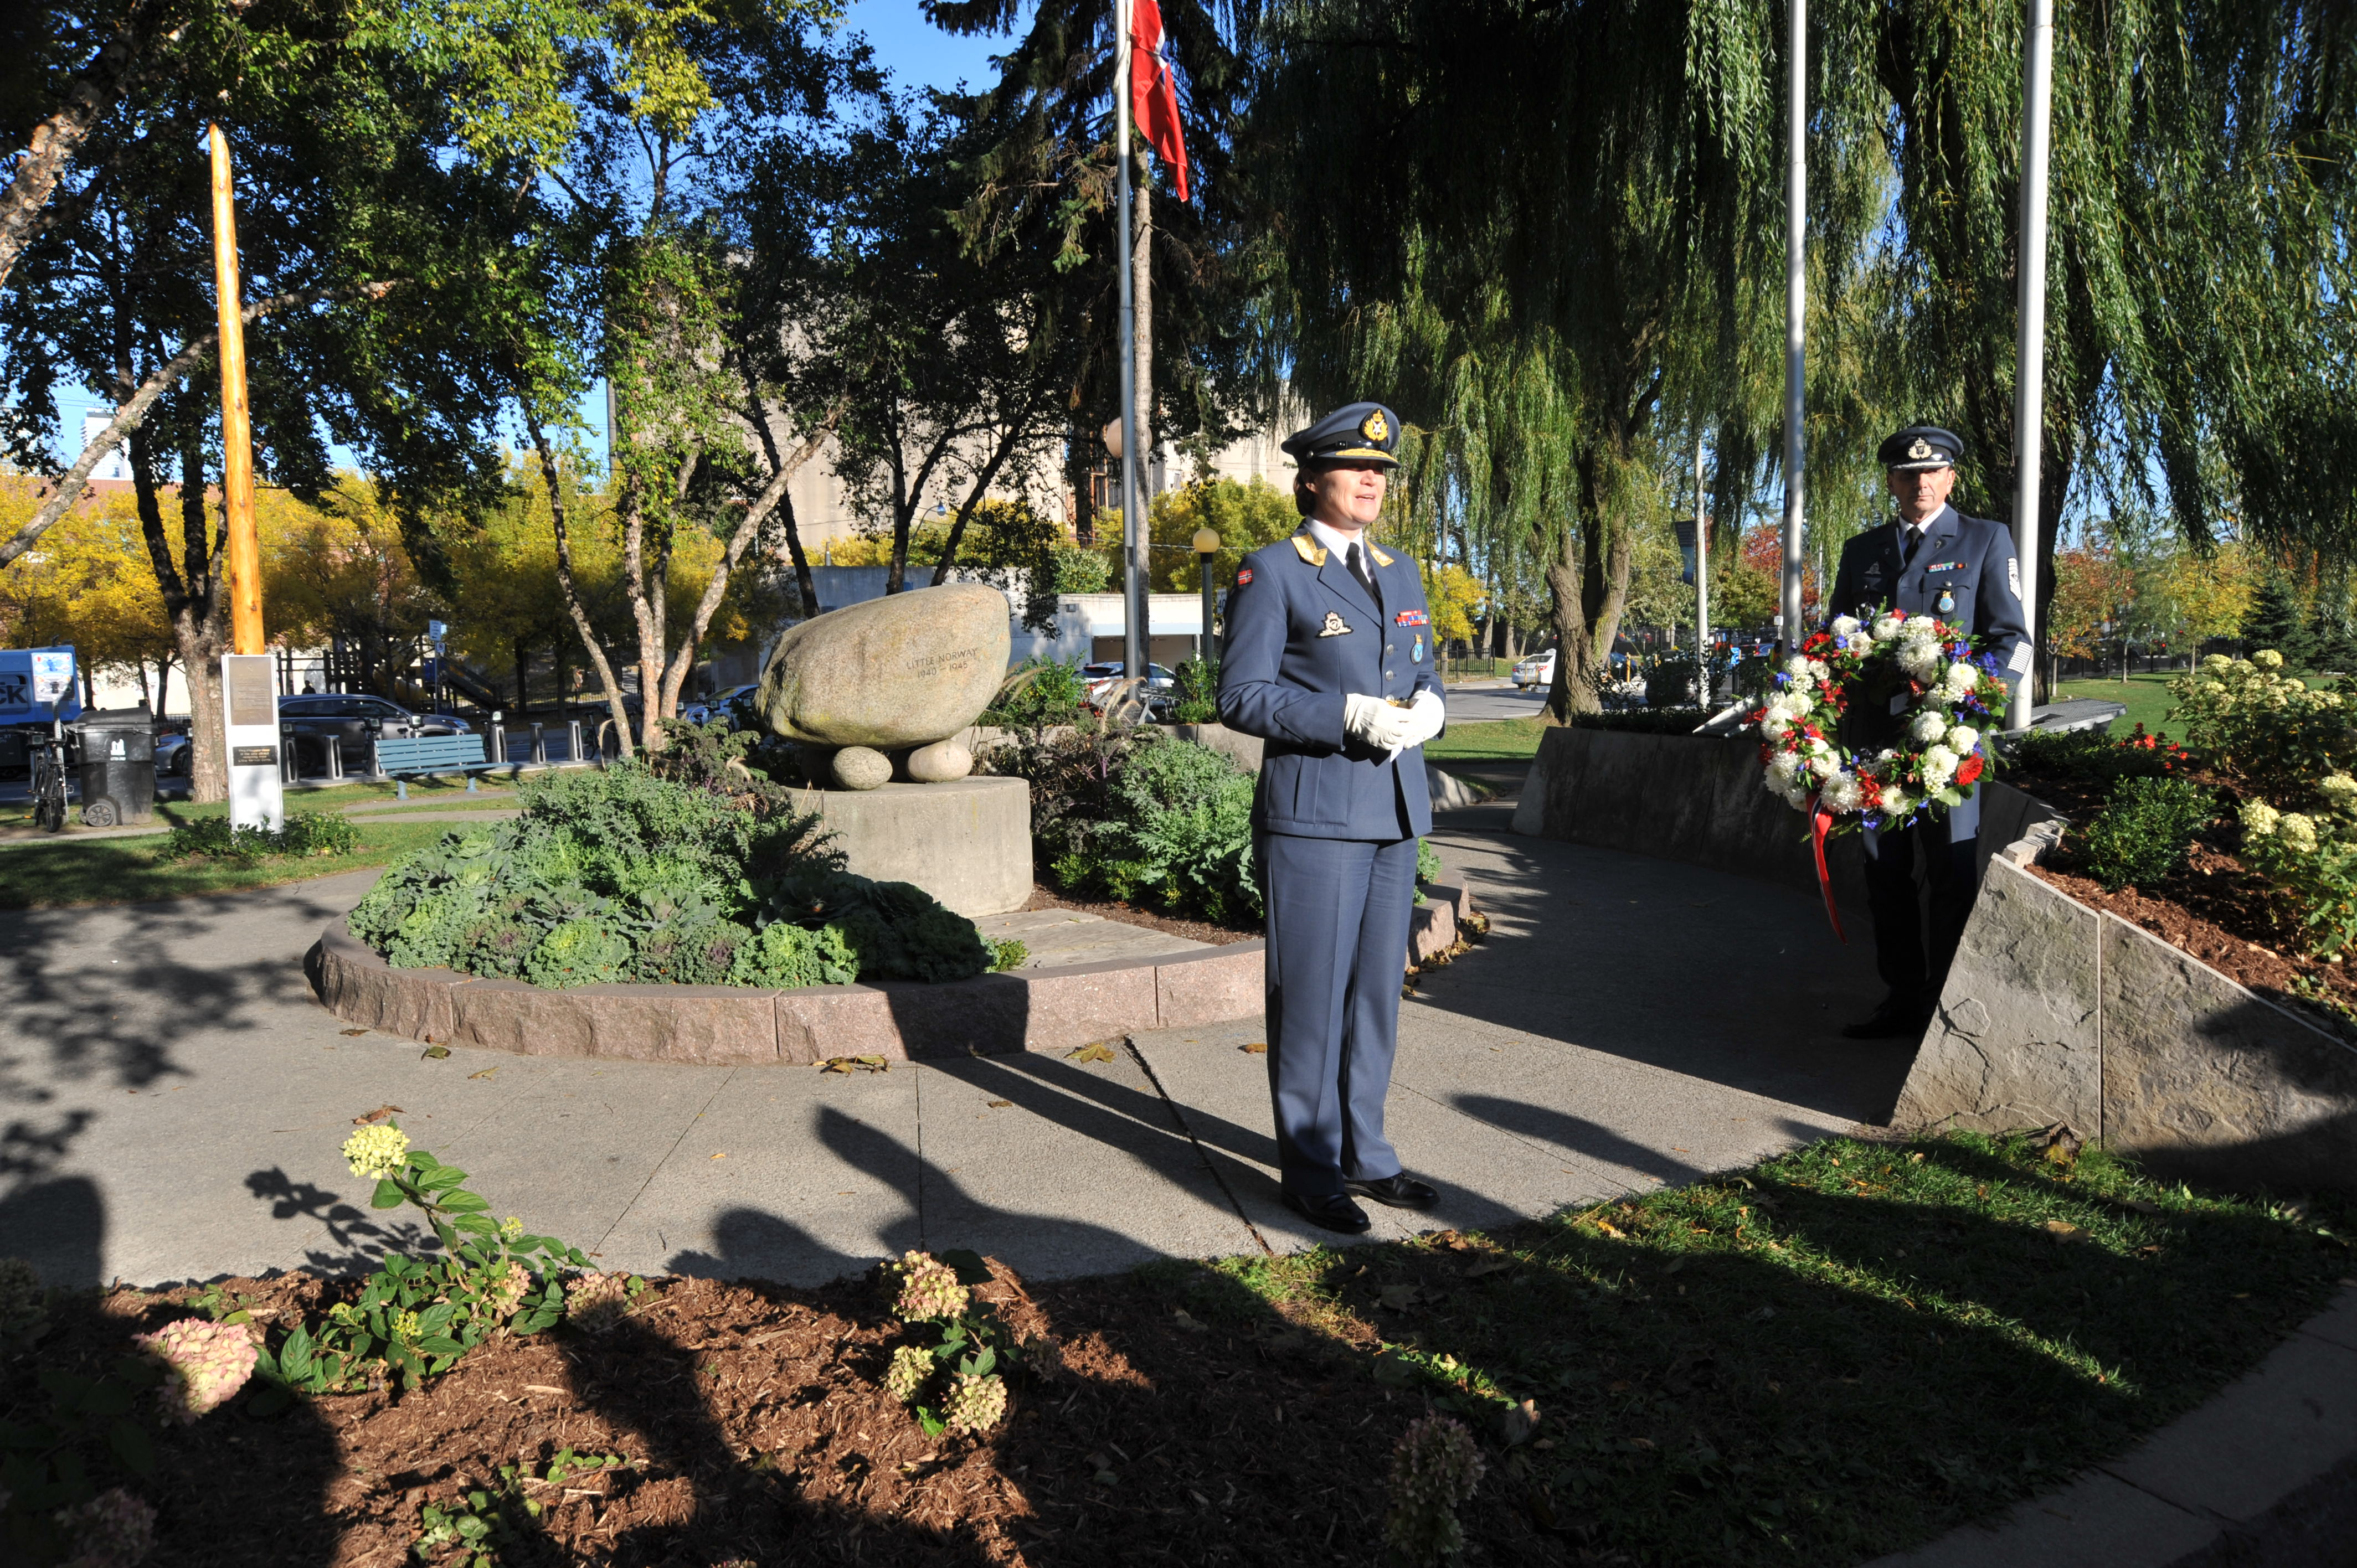 On October 11, 2019, Major-General Tonje Skinnarland, chief of the Royal Norwegian Air Force, and Norwegian Air Force Sergeant-Major Christian Olsen participate in a wreath-laying ceremony at the Little Norway Park monument during celebrations marking the 75th anniversary of the Royal Norwegian Air Force. PHOTO: Lieutenant Nora Amrane